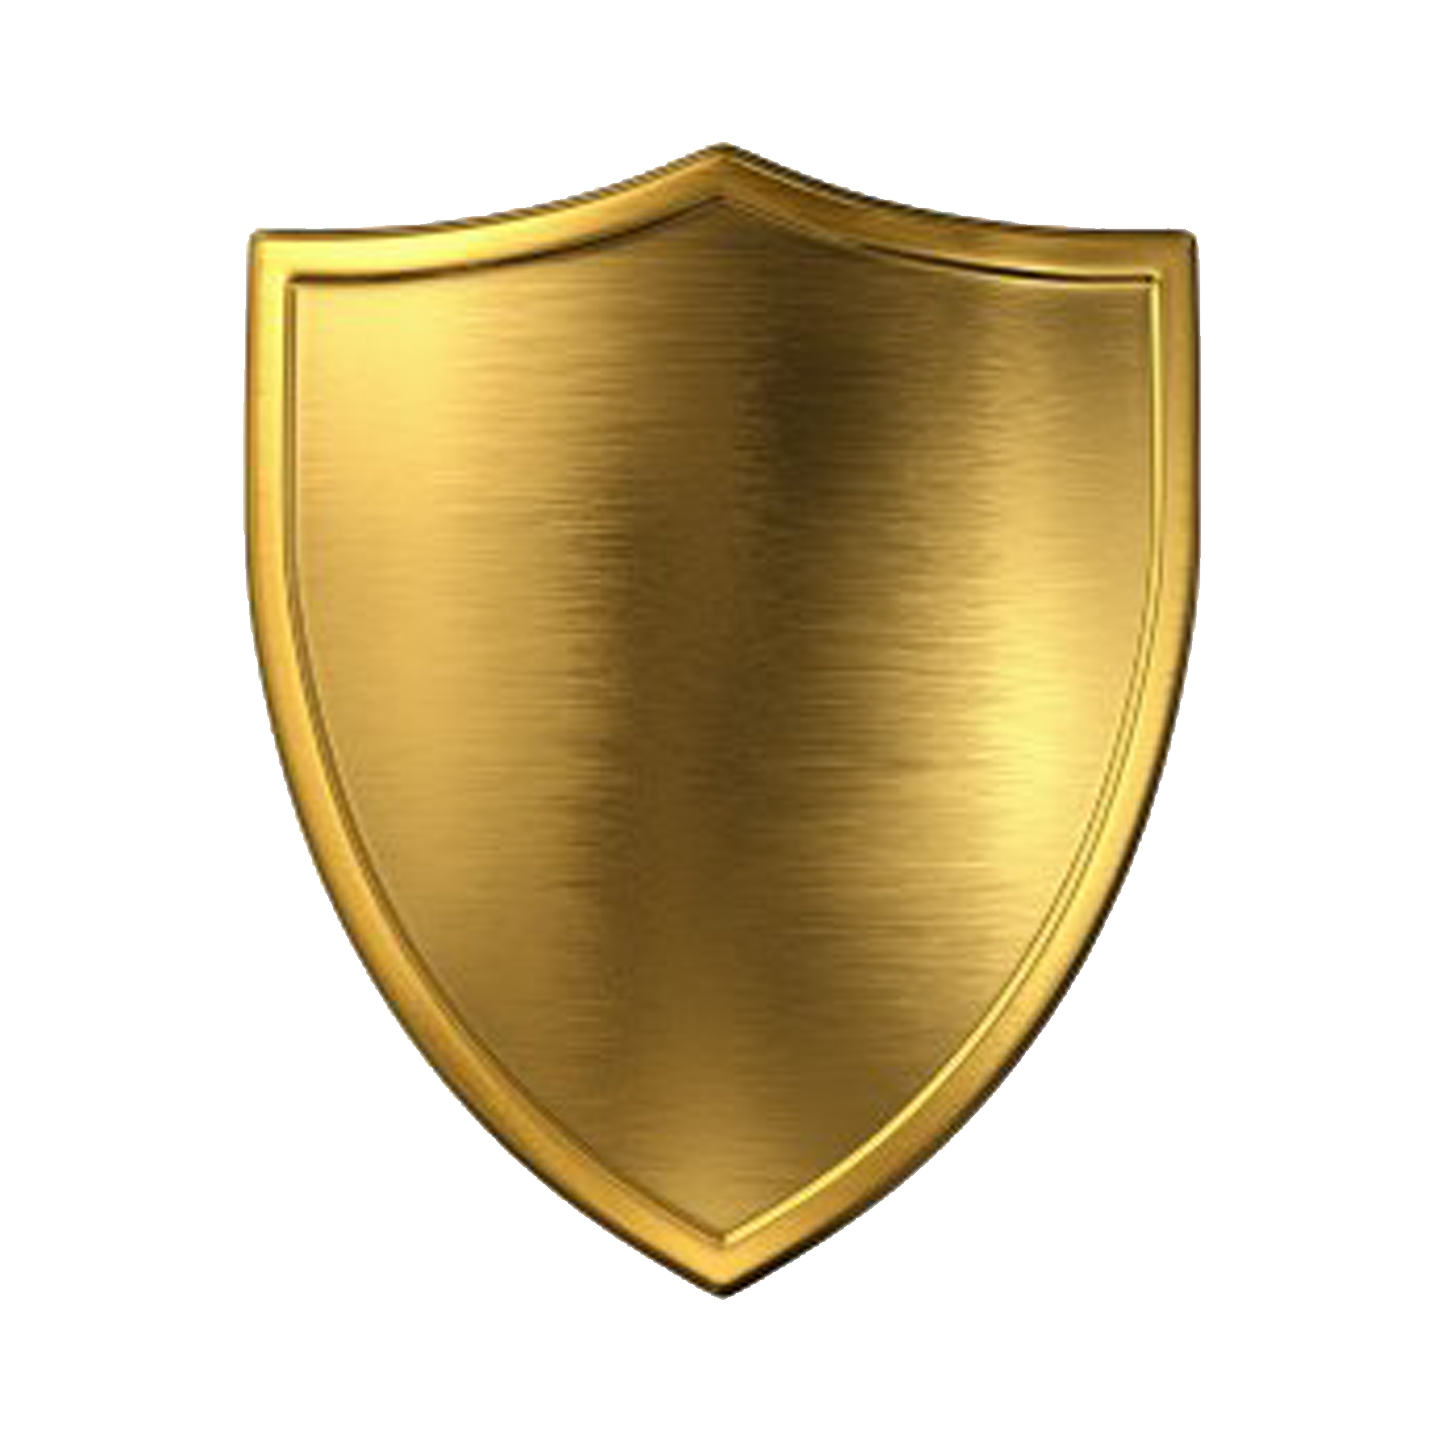 graphic transparent download Clipart shield free pictures